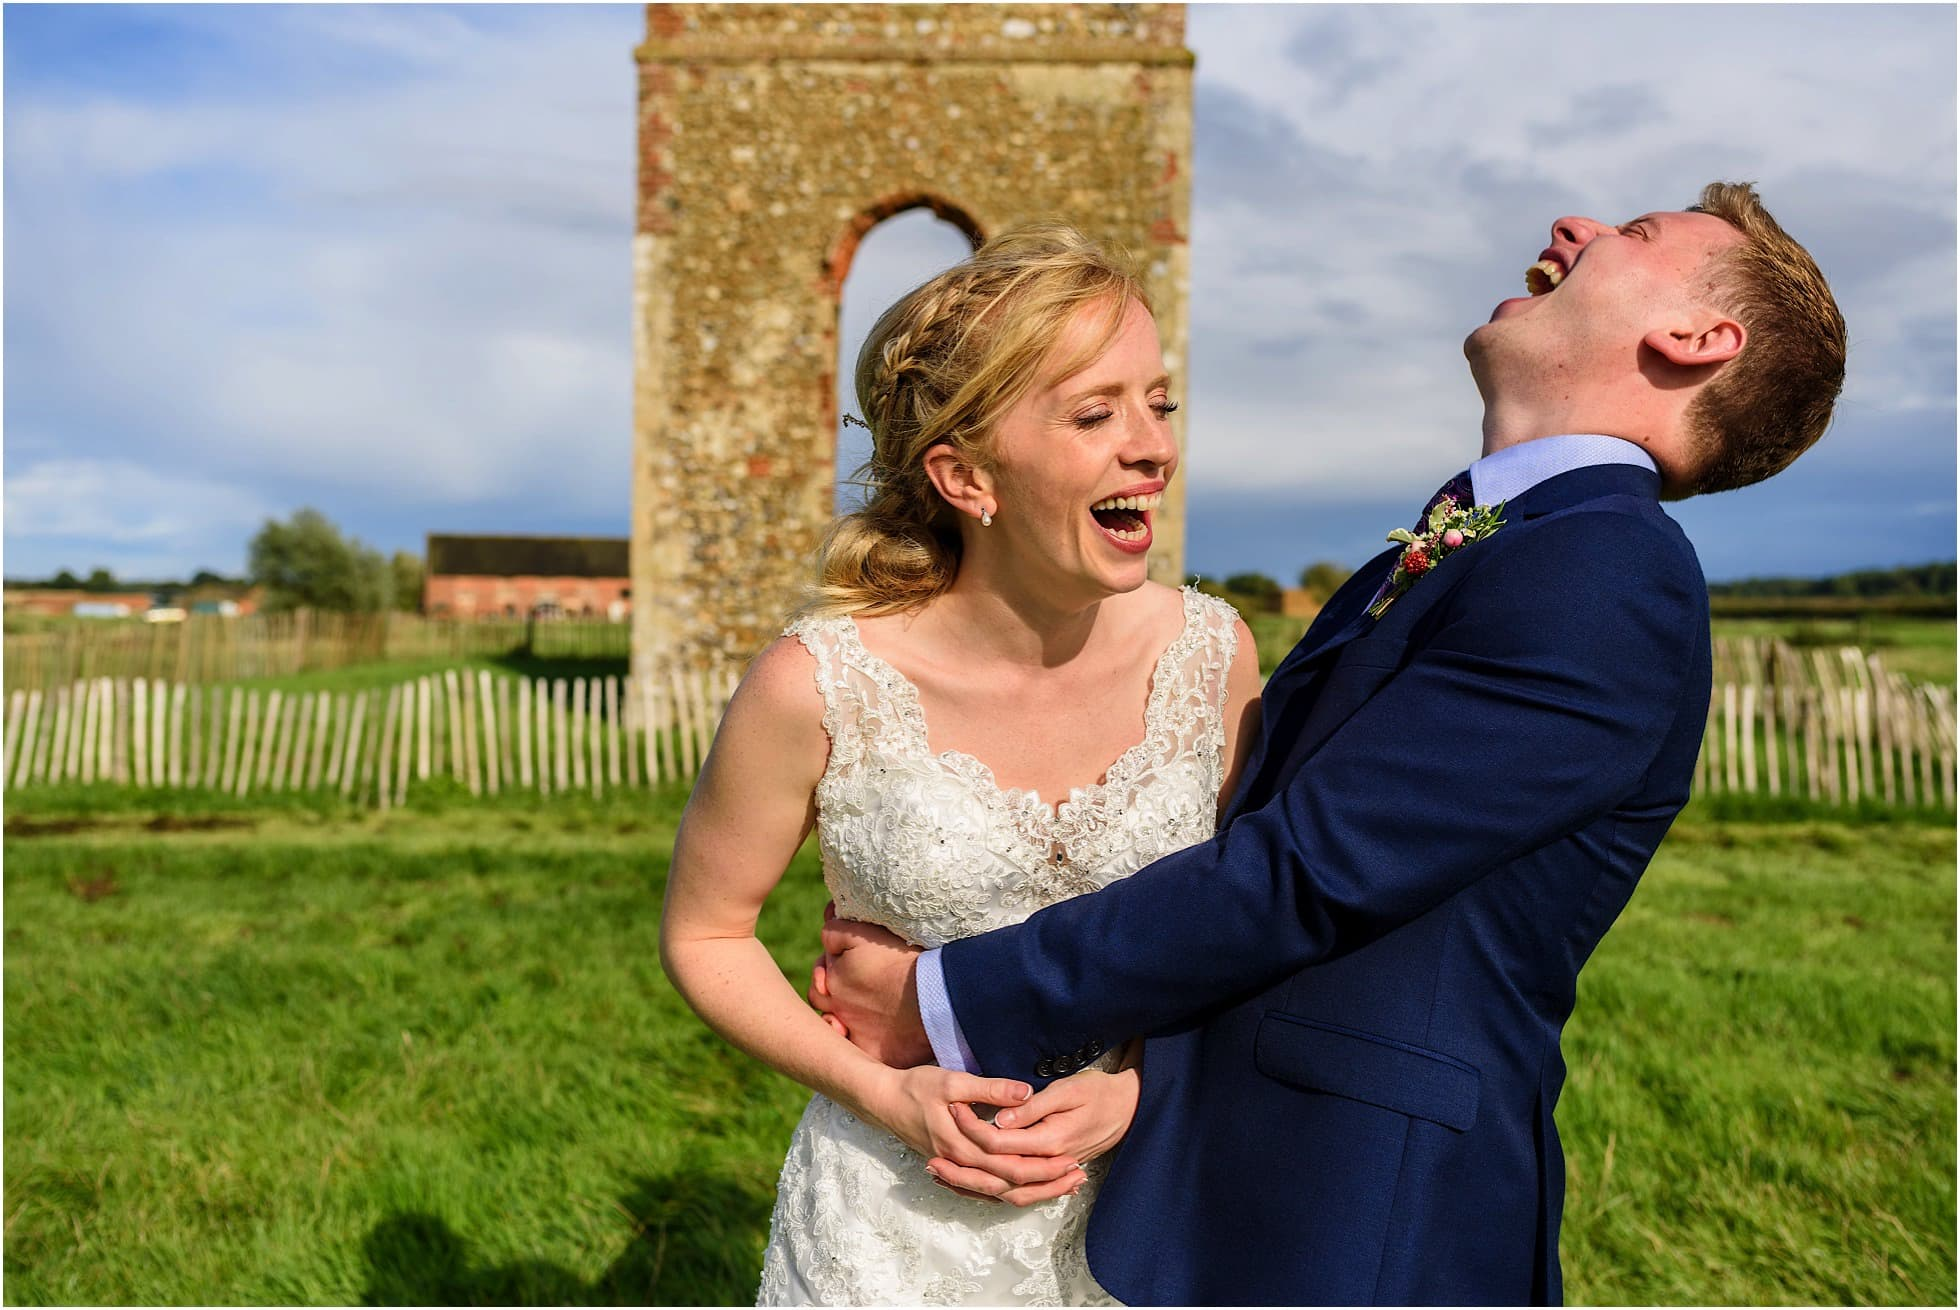 Godwick Barn Wedding Photography candid moment